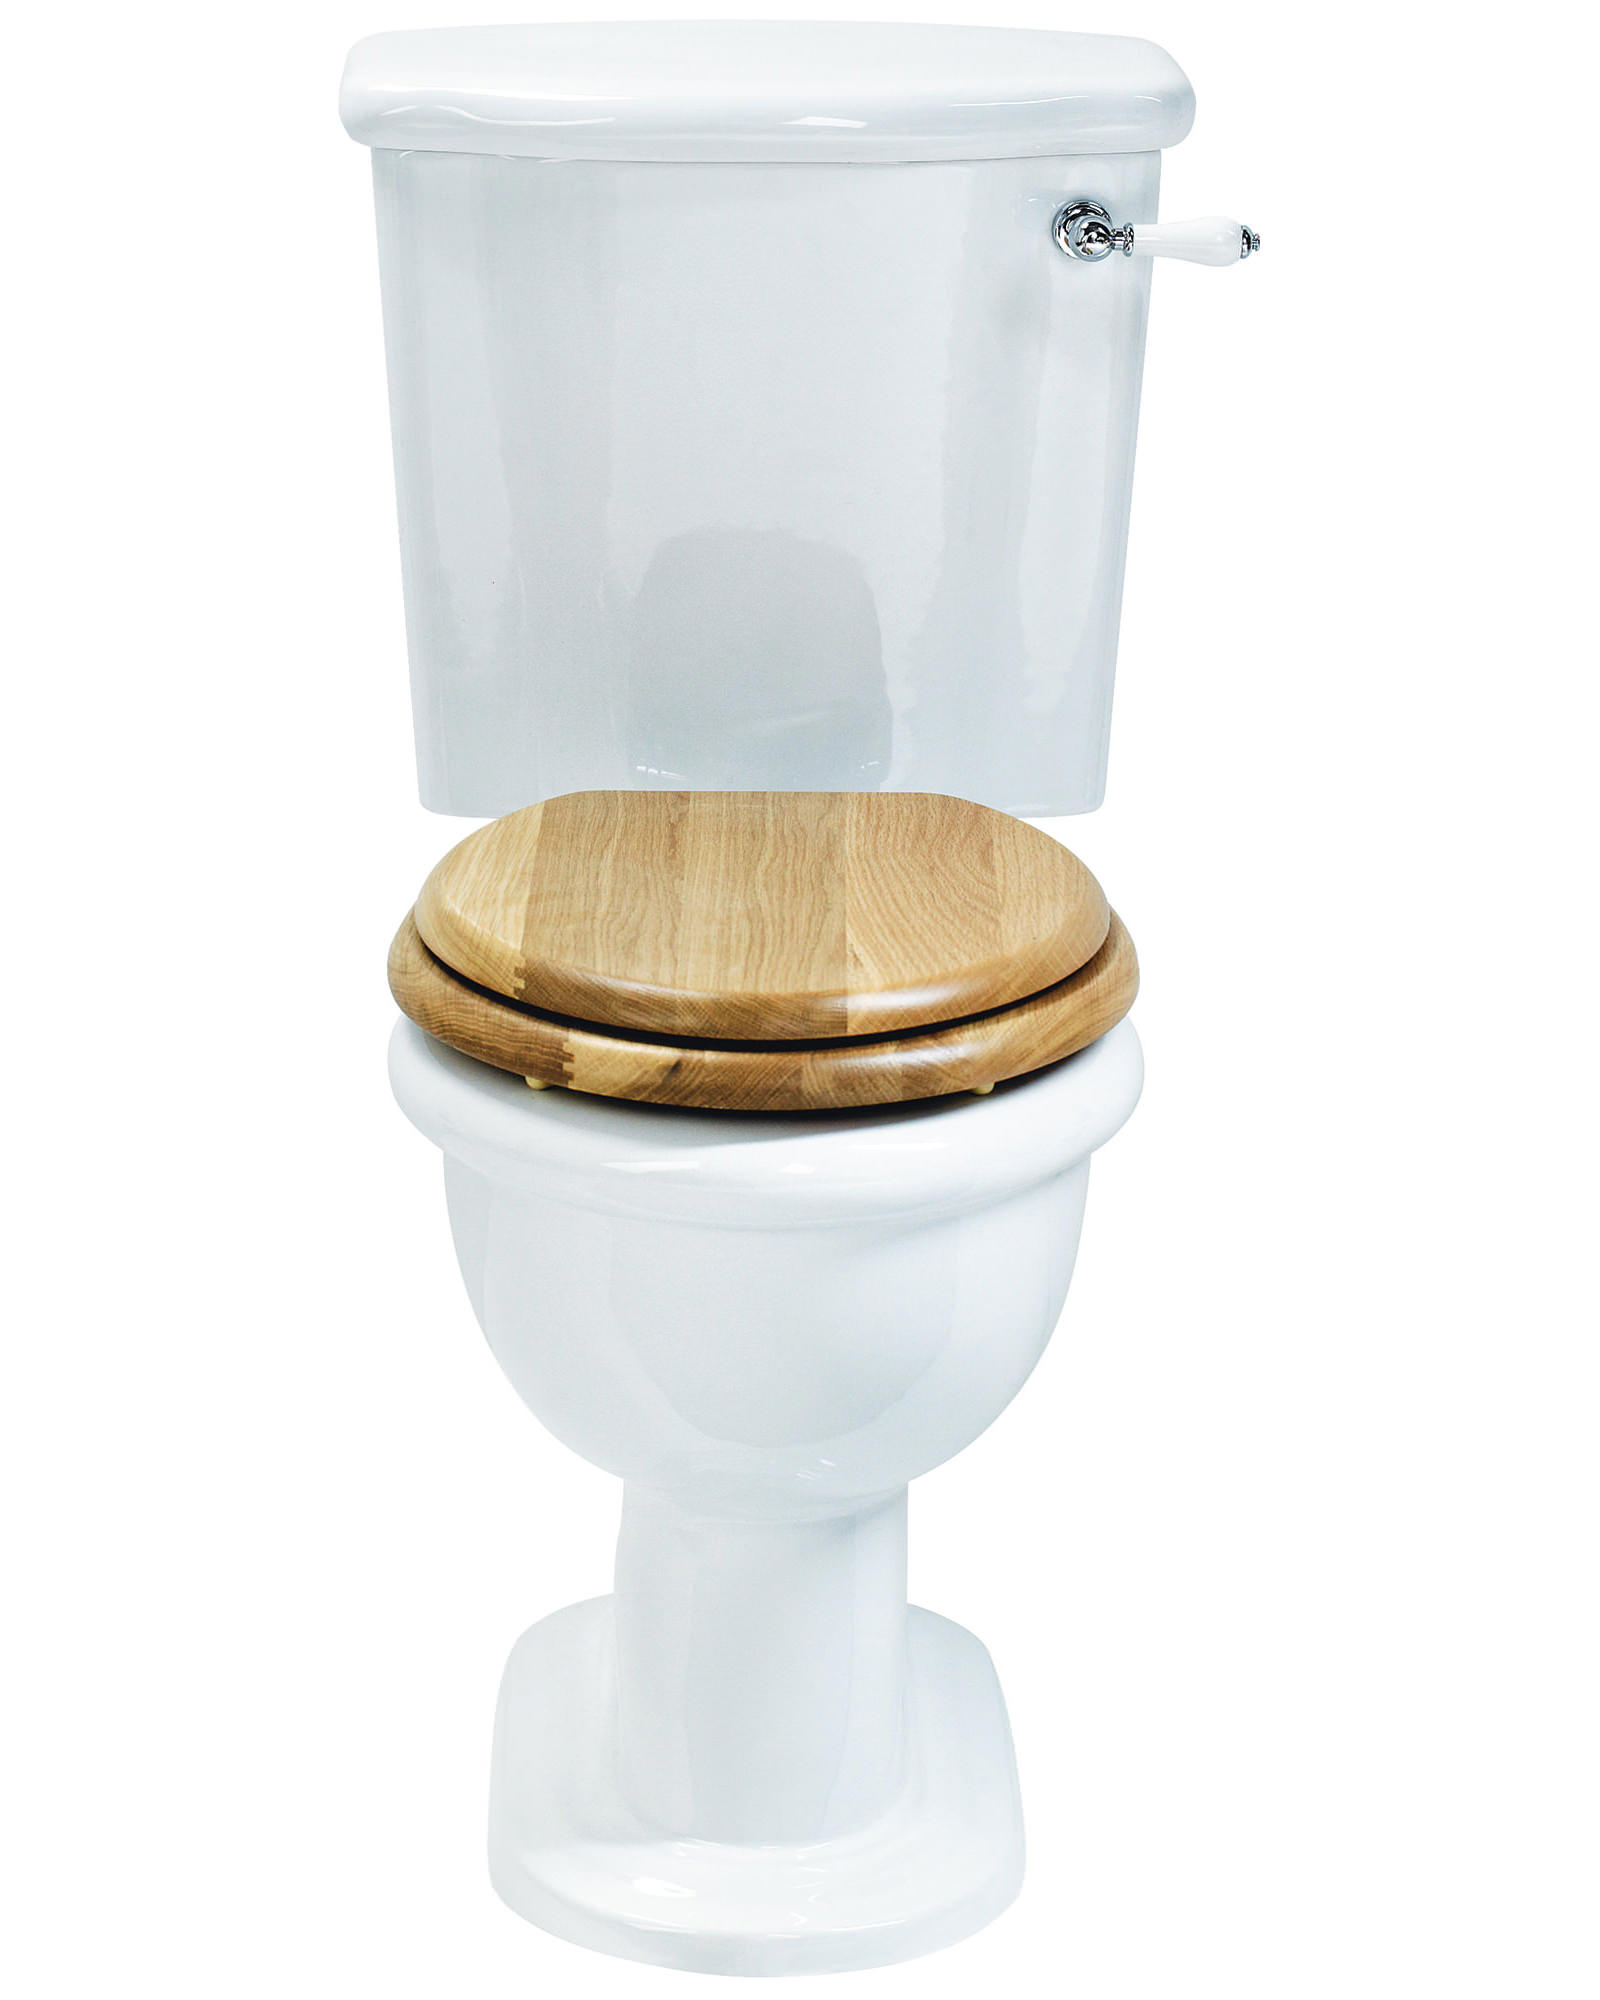 Wondrous Heritage Victoria Close Coupled Wc And Cistern 710Mm Theyellowbook Wood Chair Design Ideas Theyellowbookinfo